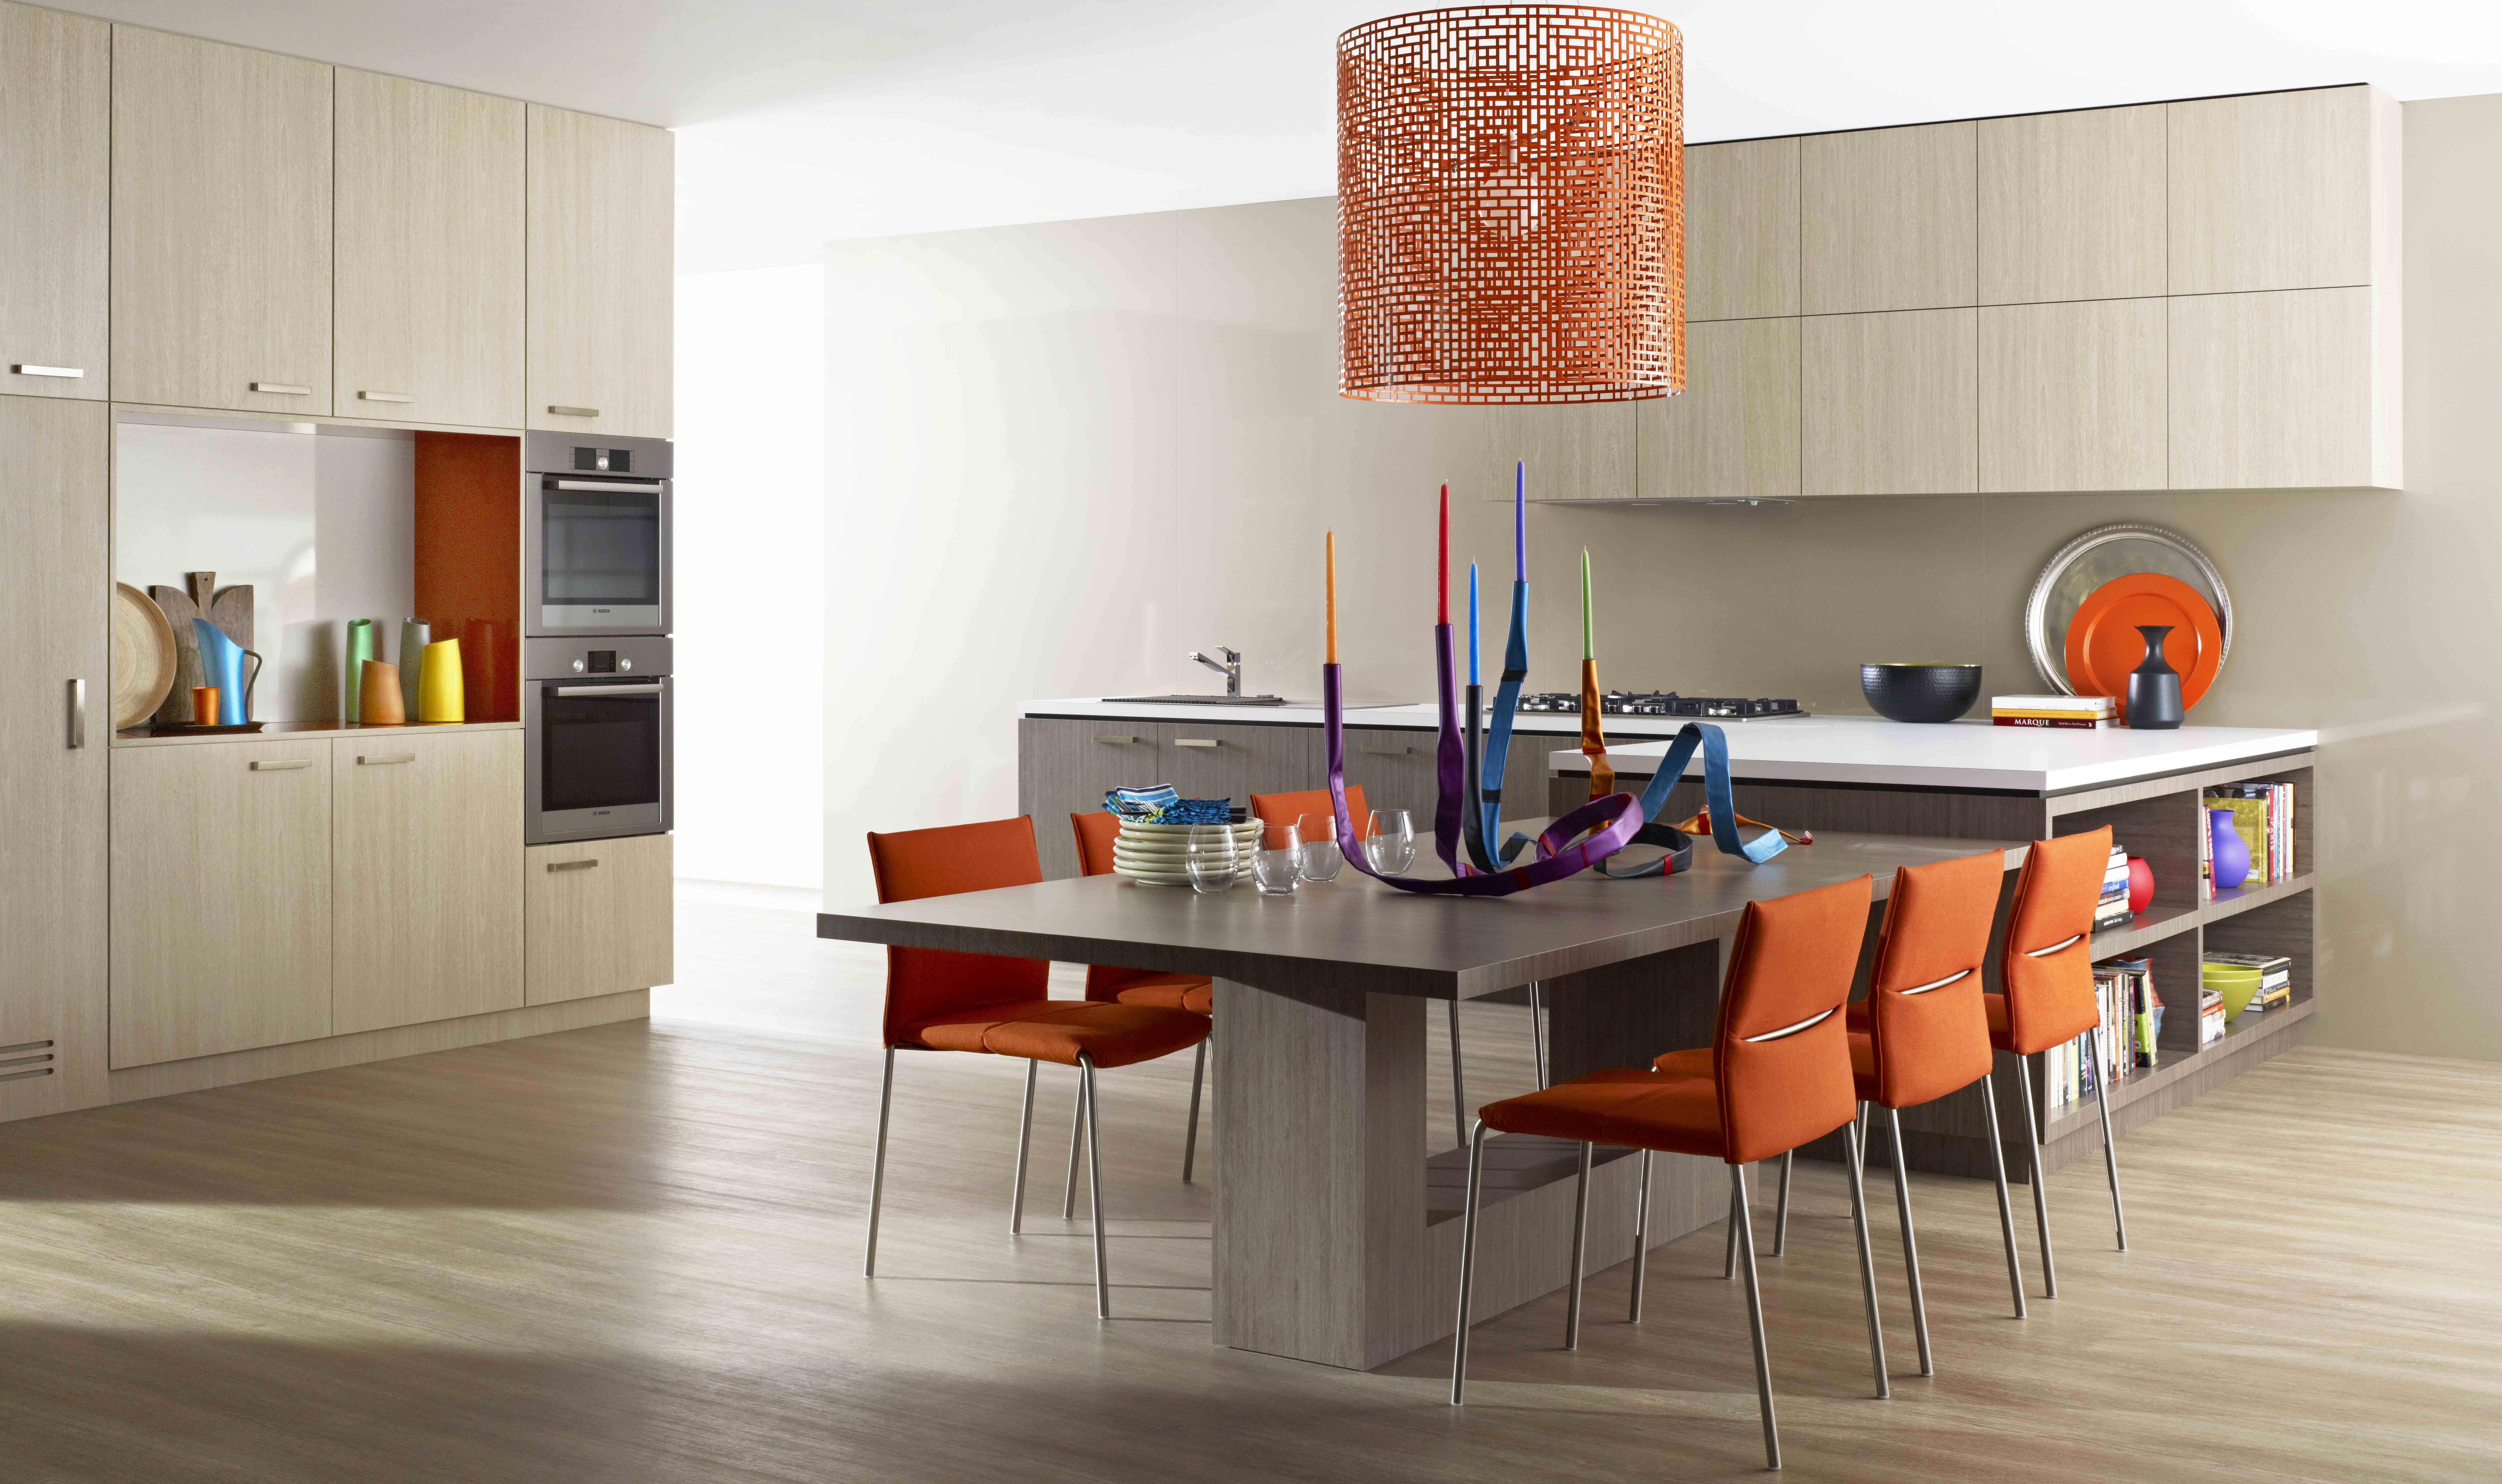 Benchtop Laminex Impressions Polar White Spark Finish Dining Table And Lower Cupboards Colour Palette